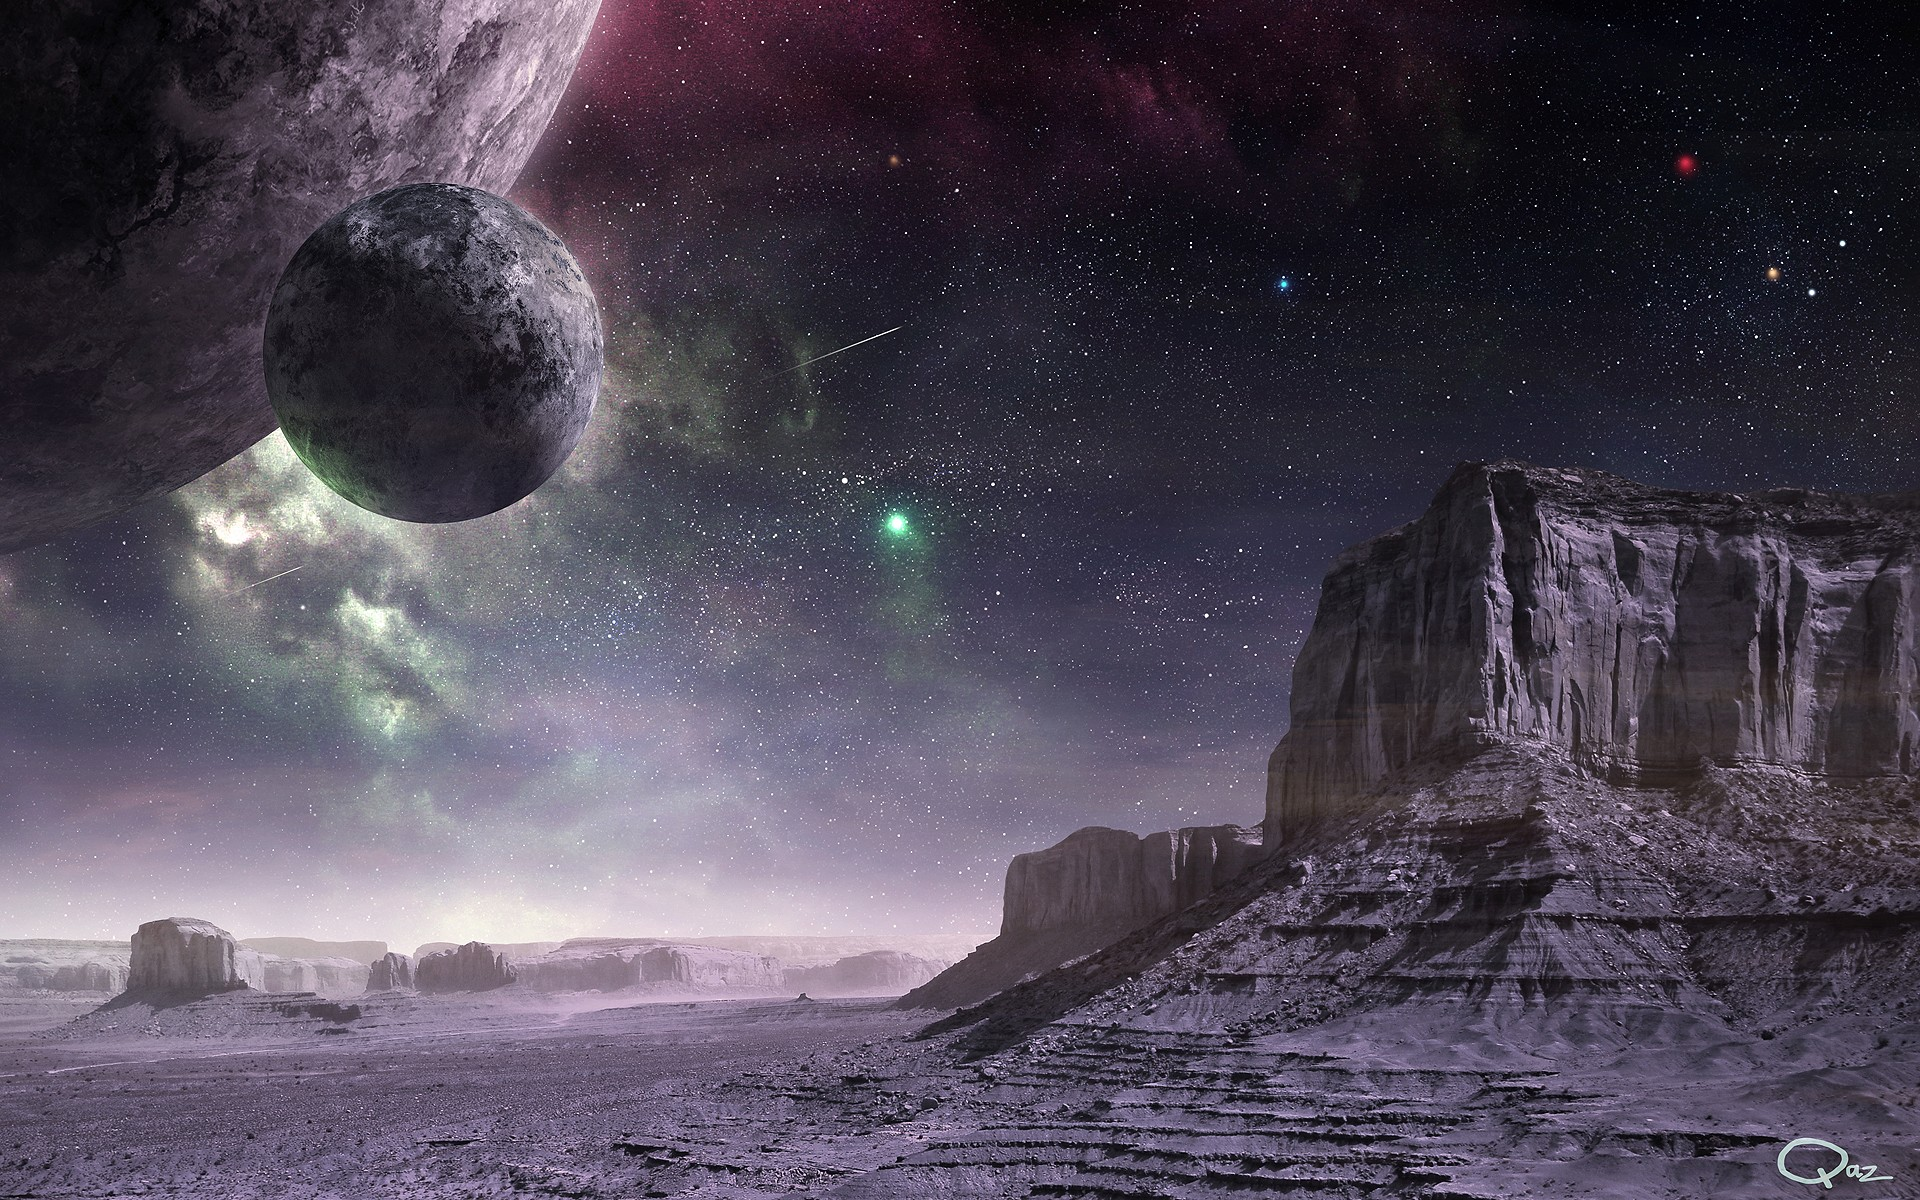 Outer Space Planets Digital Art Science Fiction Wallpaper